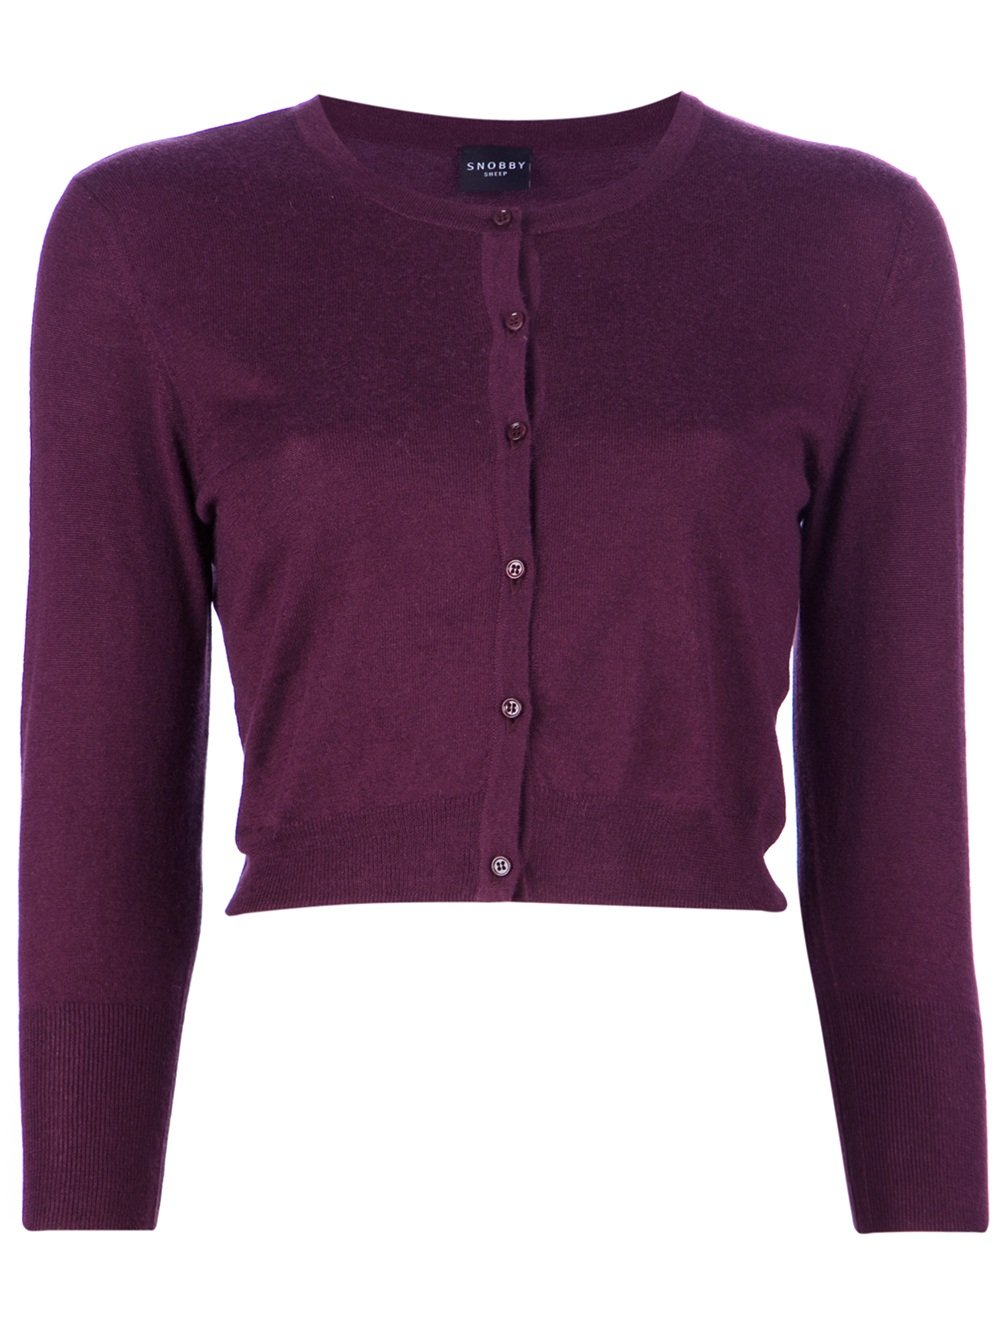 Snobby sheep Cropped Cardigan in Purple | Lyst